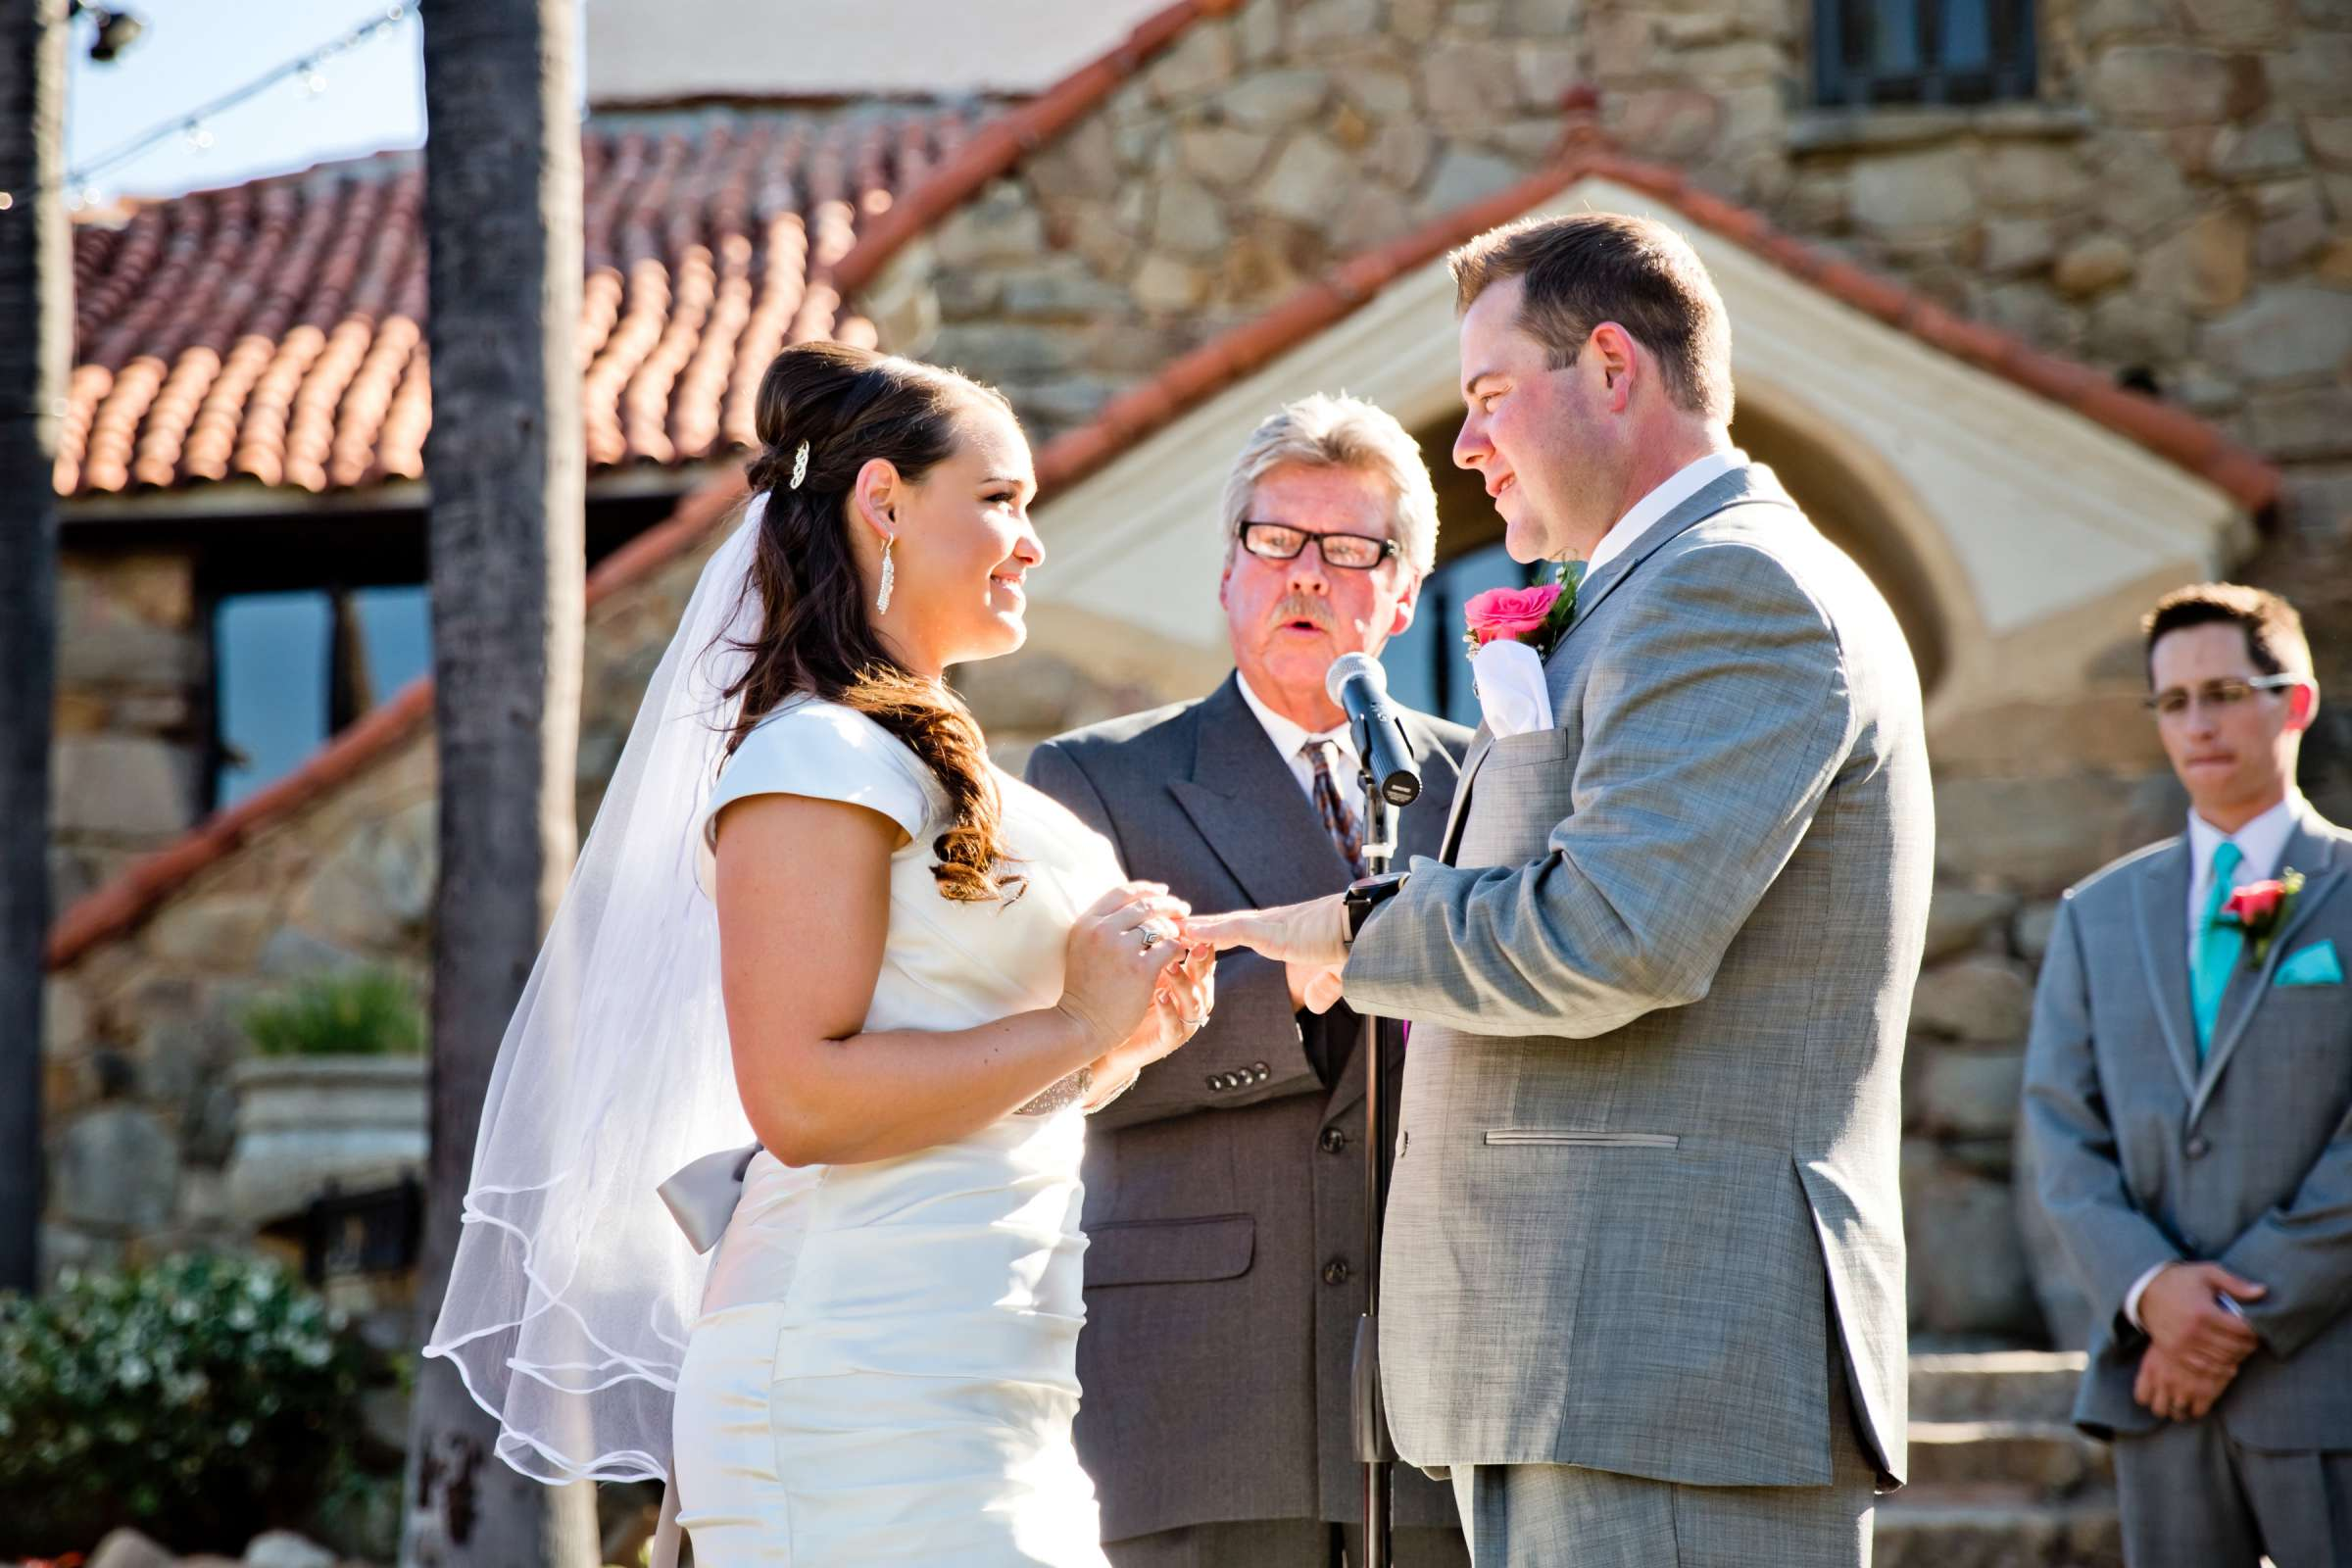 Mt Woodson Castle Wedding, Krista and Donald Wedding Photo #344725 by True Photography